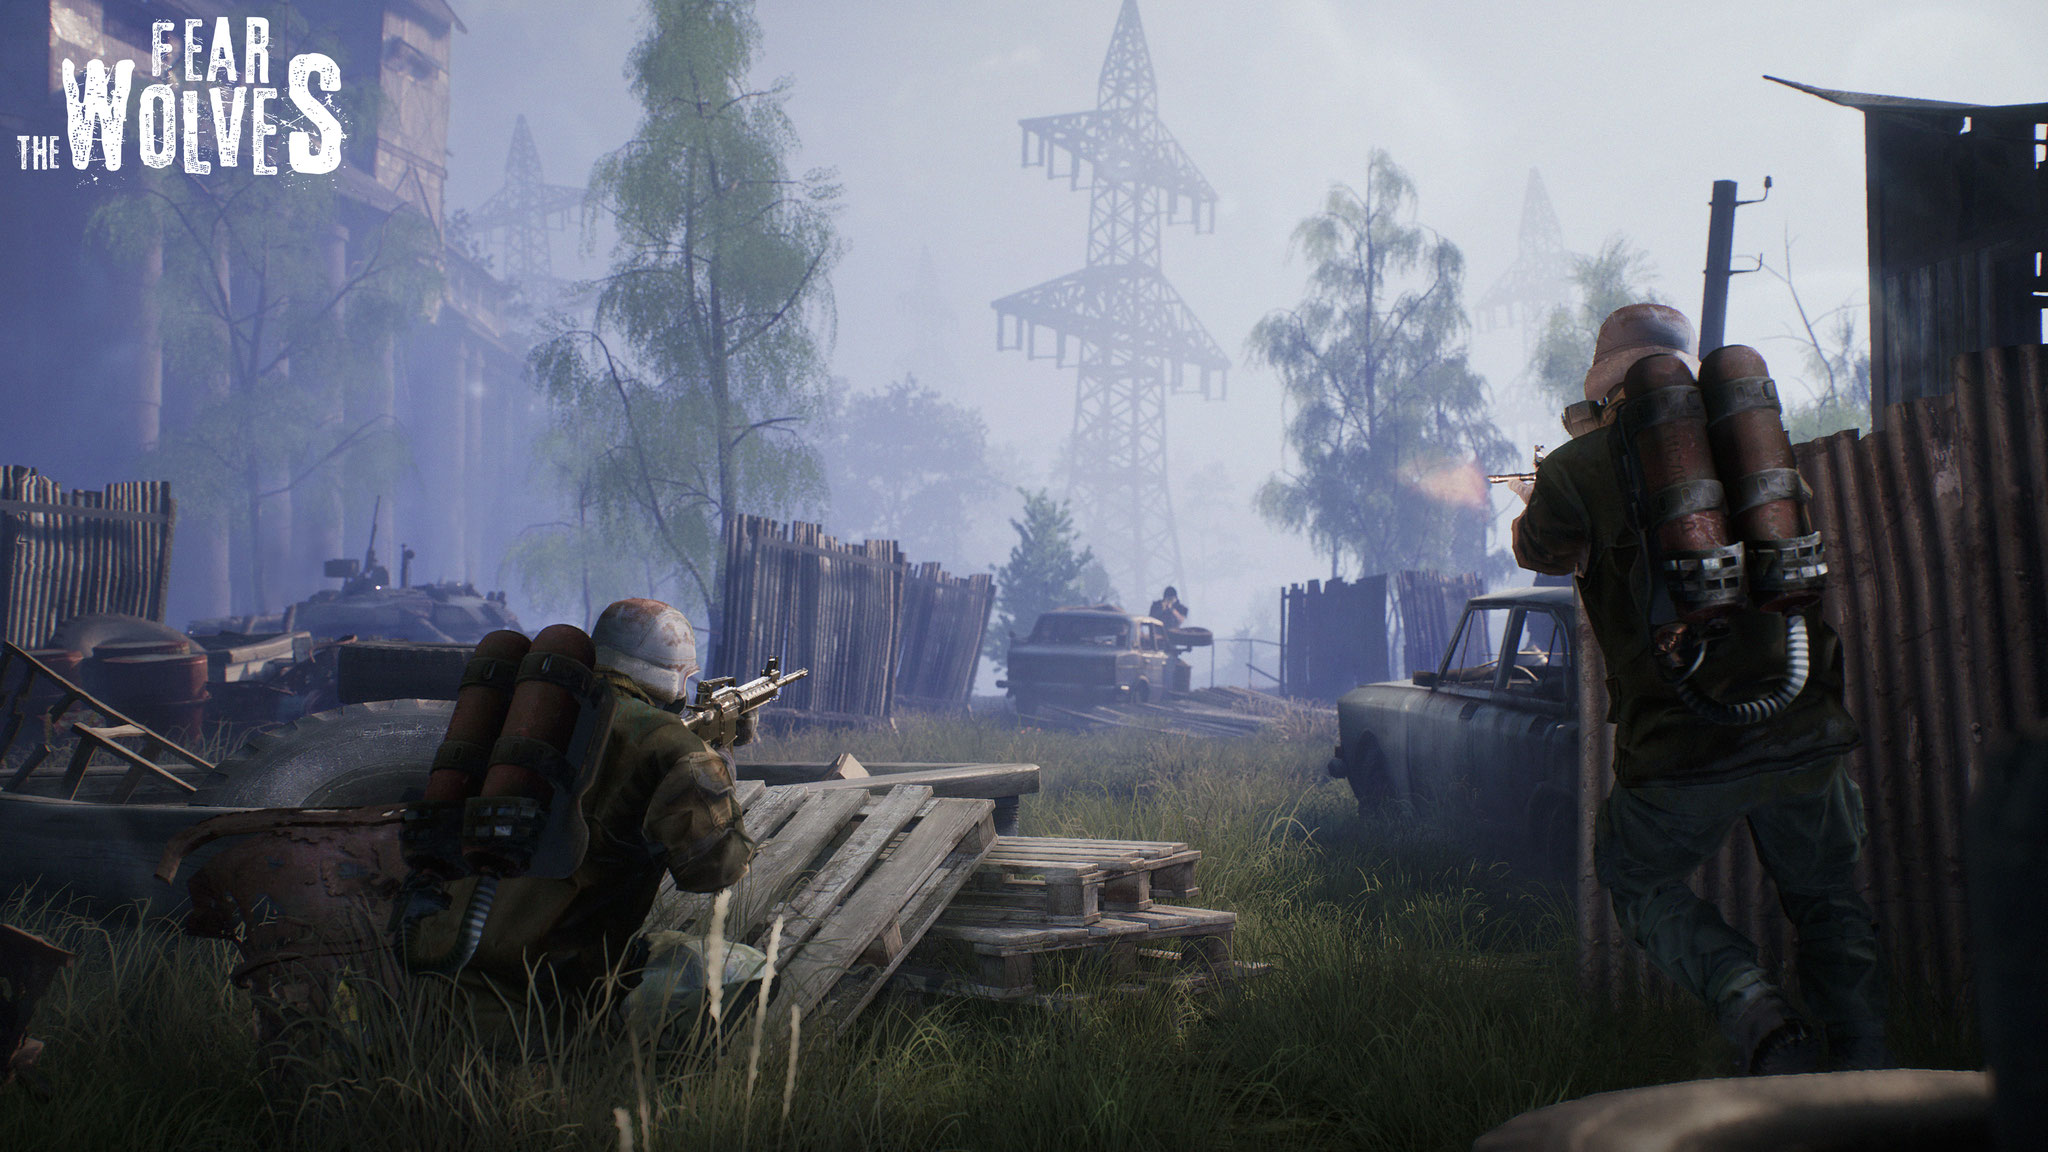 Fear the Wolves Gameplay Screenshots #1 Bild: Focus Home Interactive